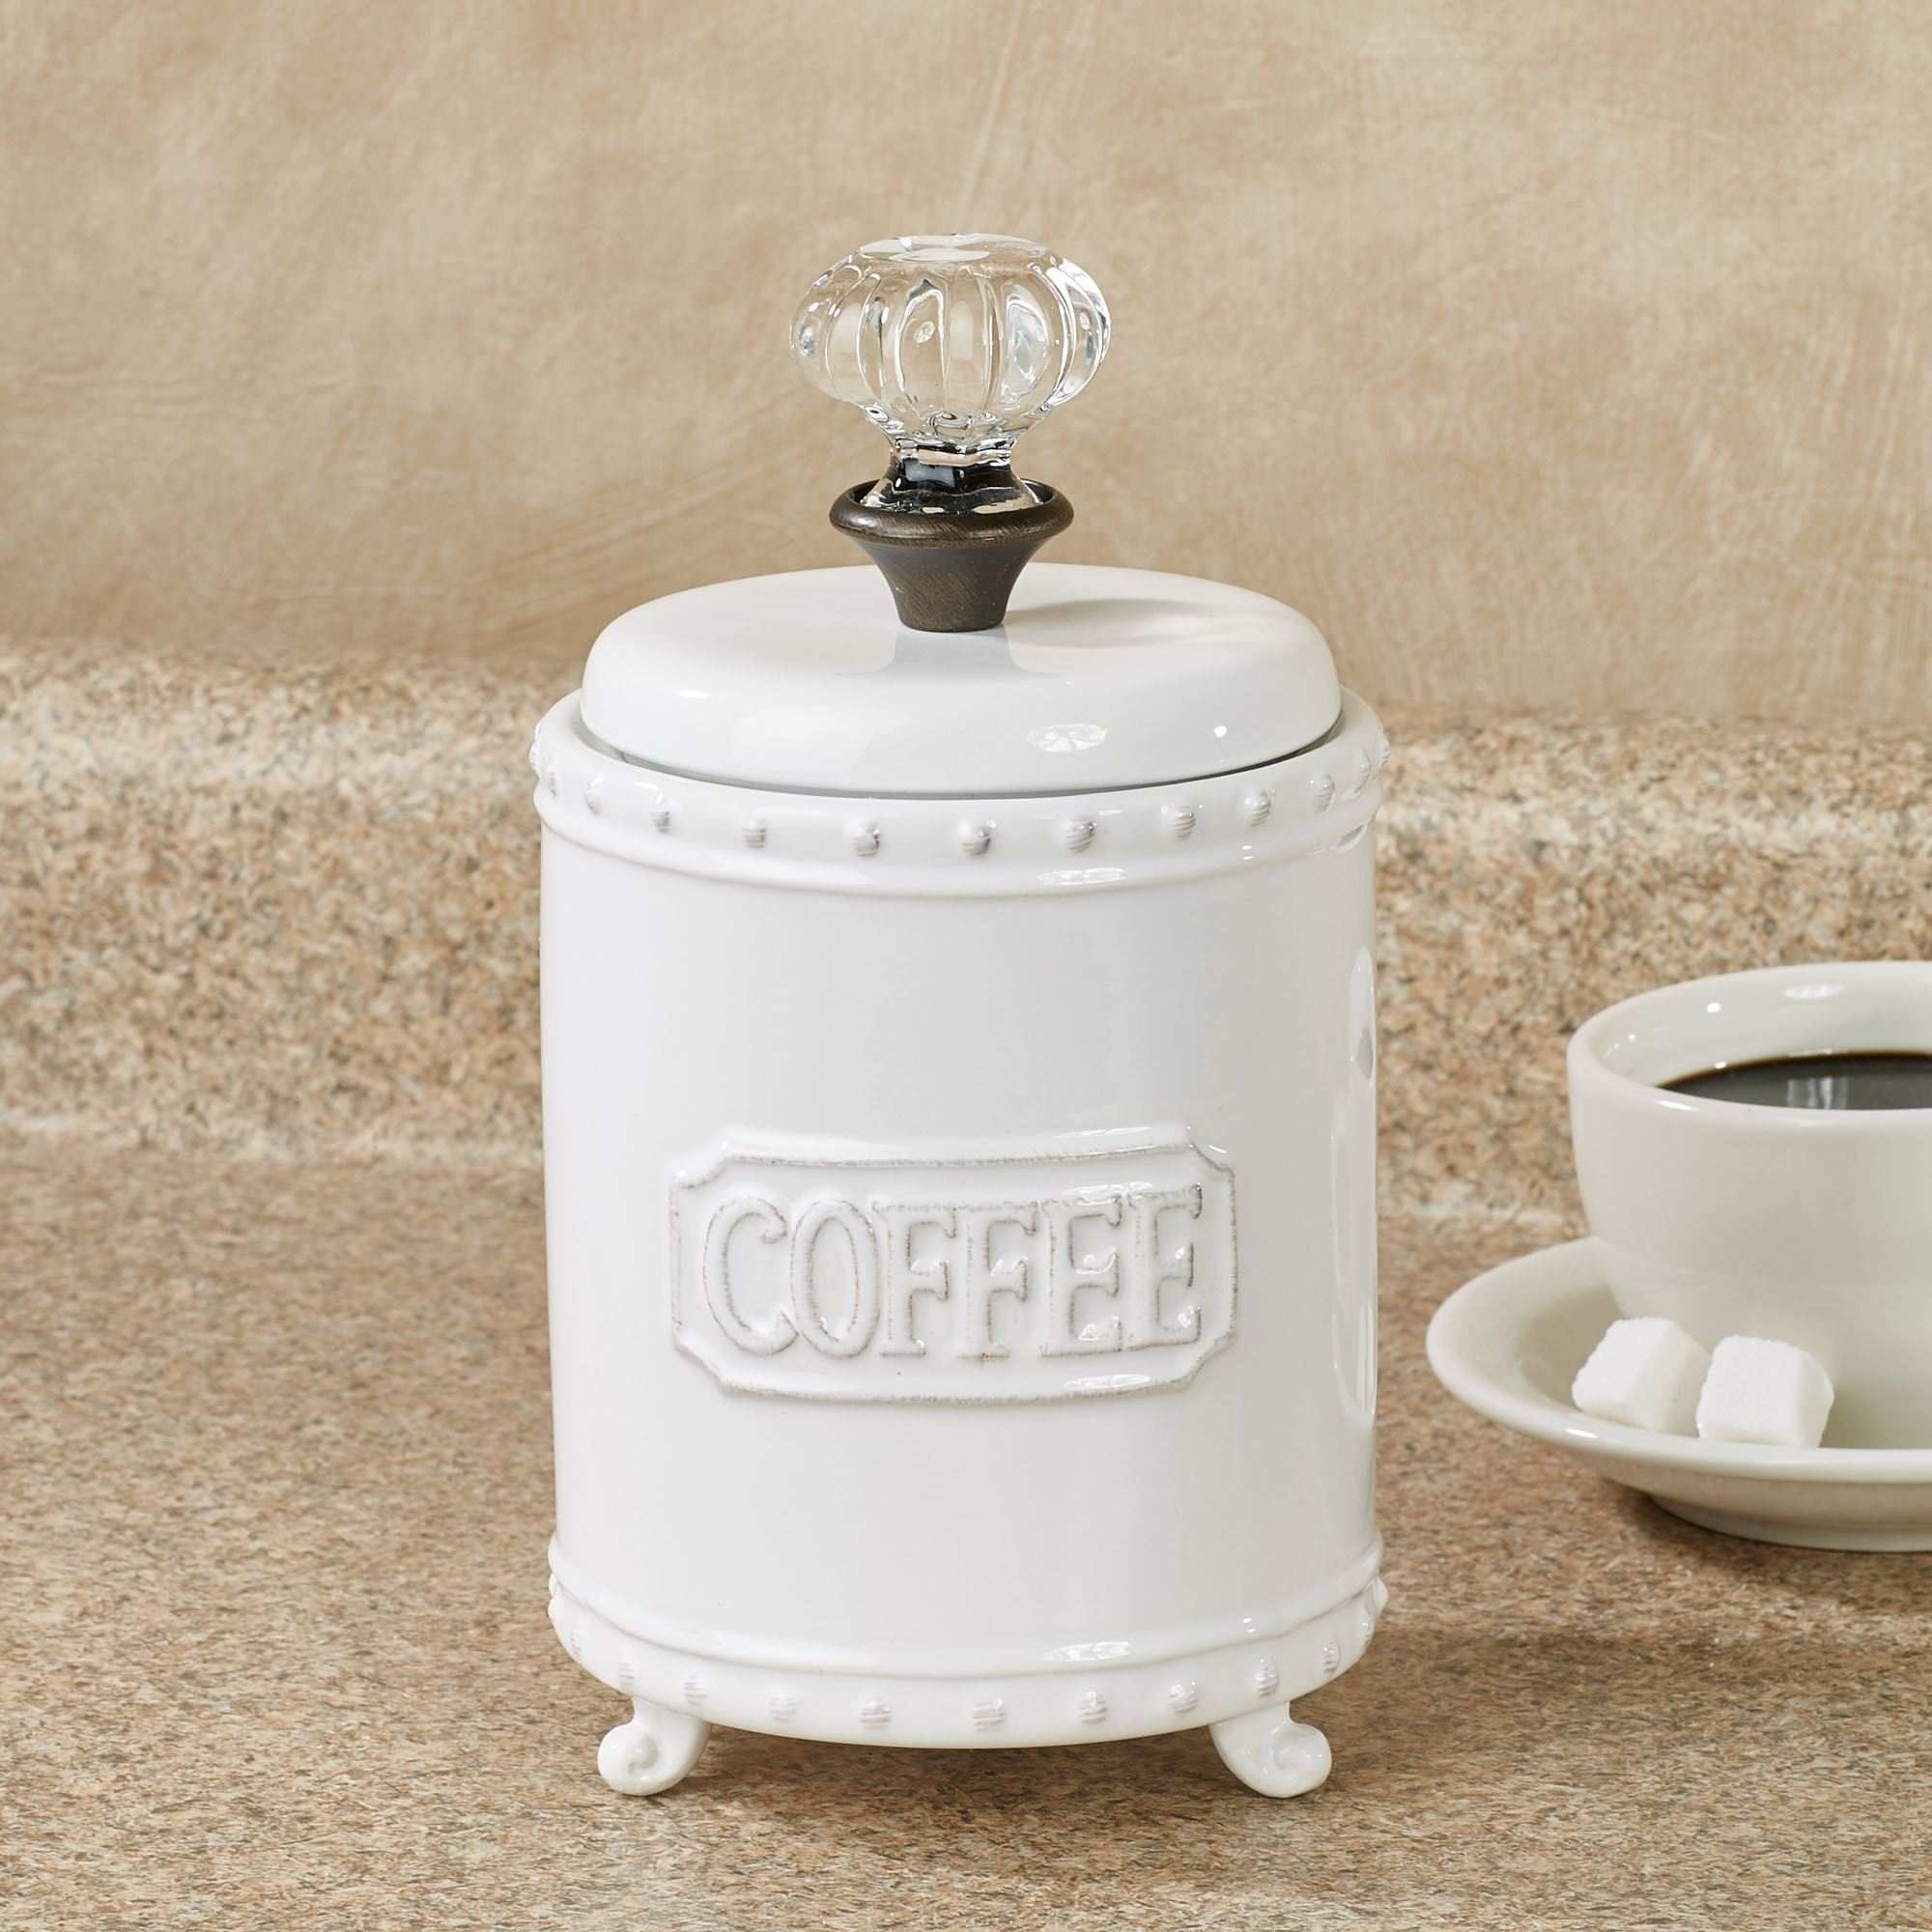 Circa Vintage Style Airtight Coffee Canister